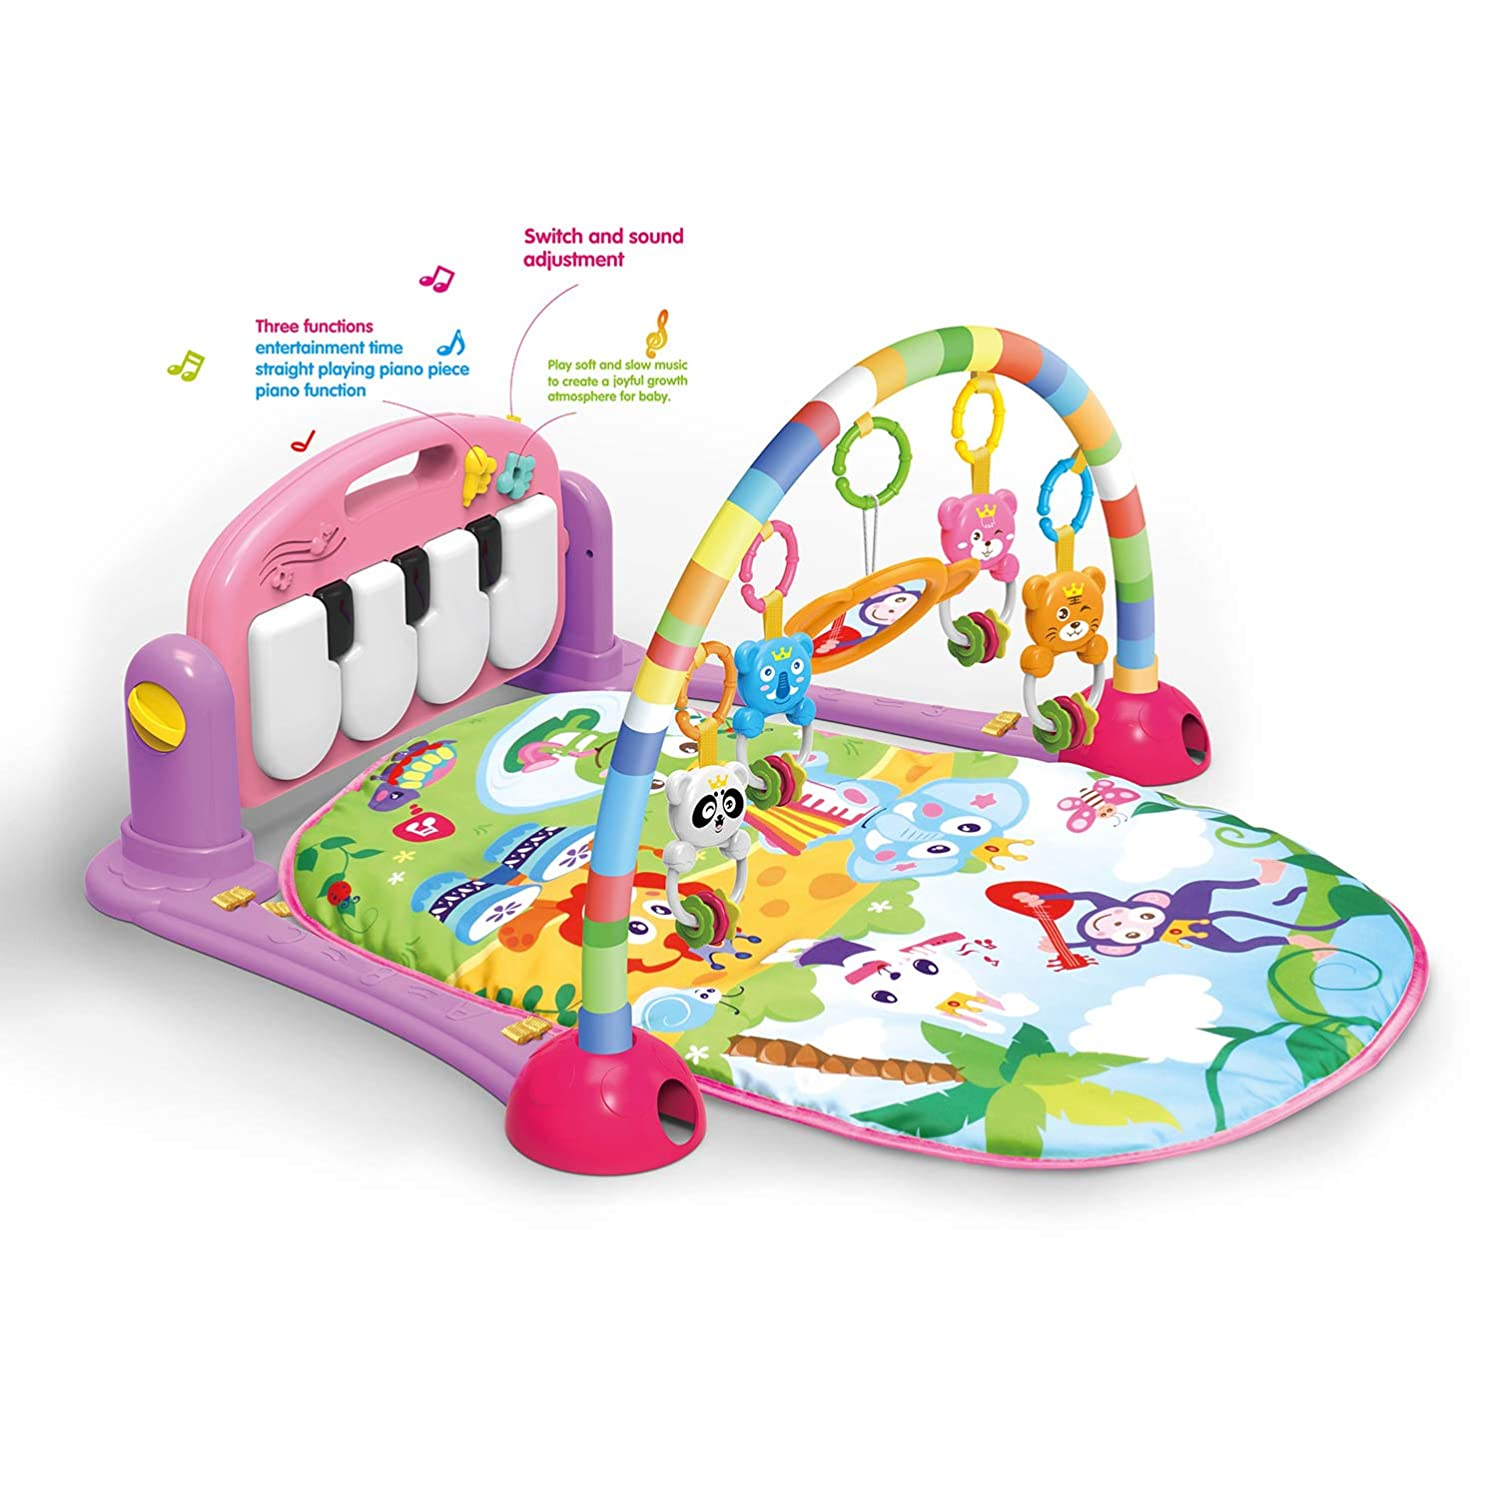 4 in 1 Kick and Play Piano Gym,Girls Baby Gym Playmat Musical Activity Playmat, Soft Toys, Rattle, Light & Sound Playmat Discovery Carpet for Infants Toddlers Newborn Kick and Playmat 0-36 Months(PINK COLOR) Tech Traders